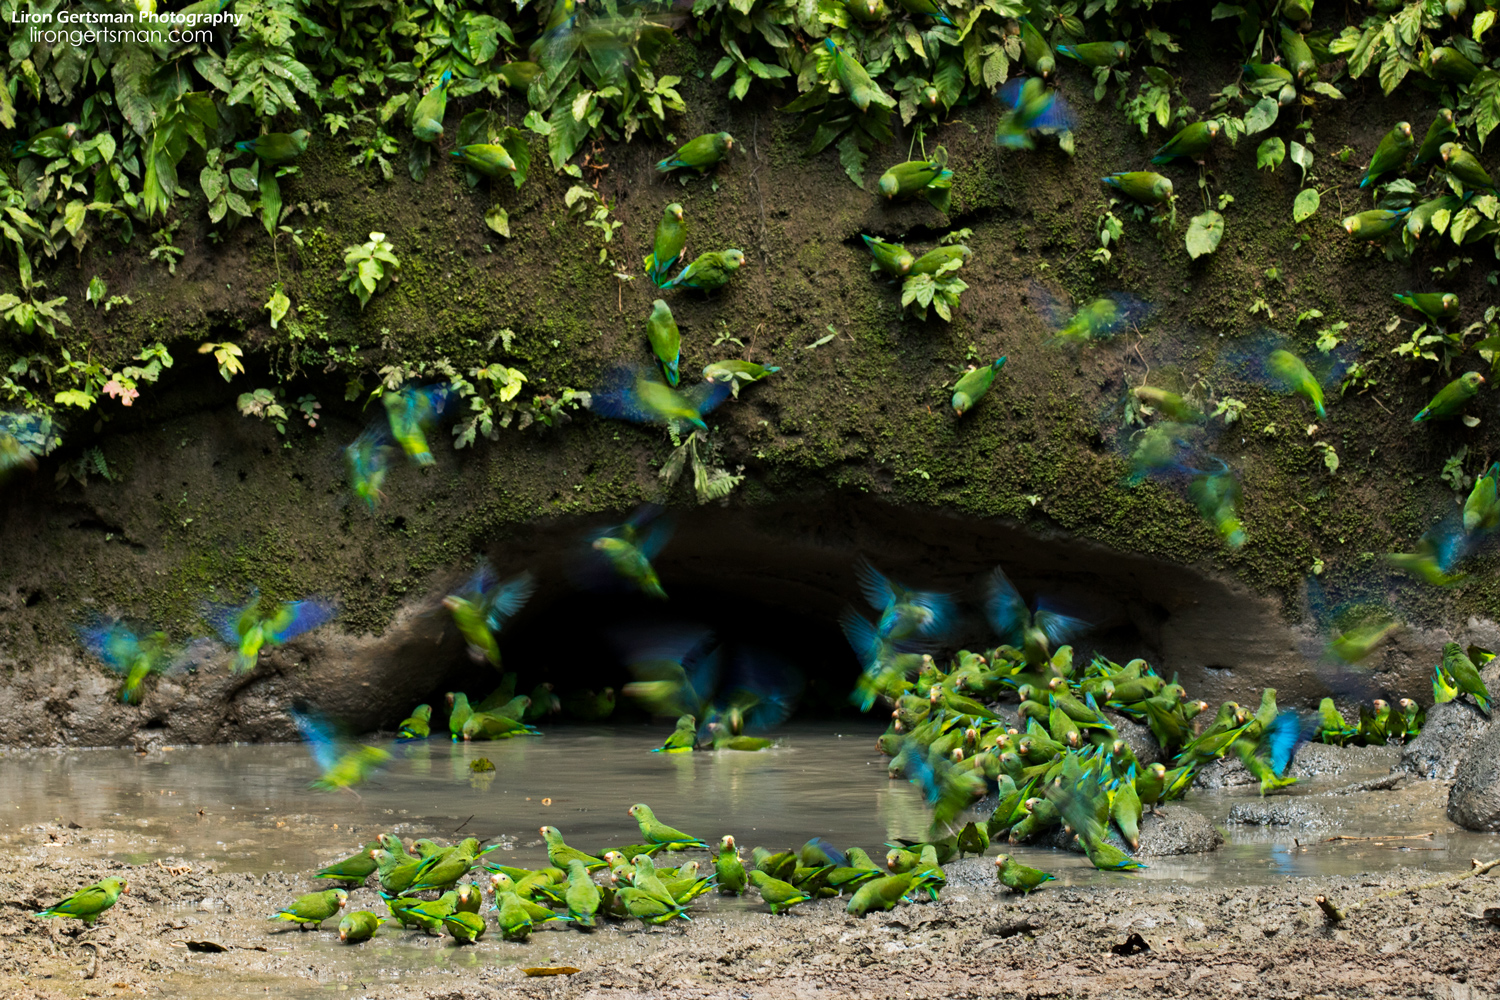 Taking a wider view is necessary to witness the hundreds of parakeets visiting the clay lick area.